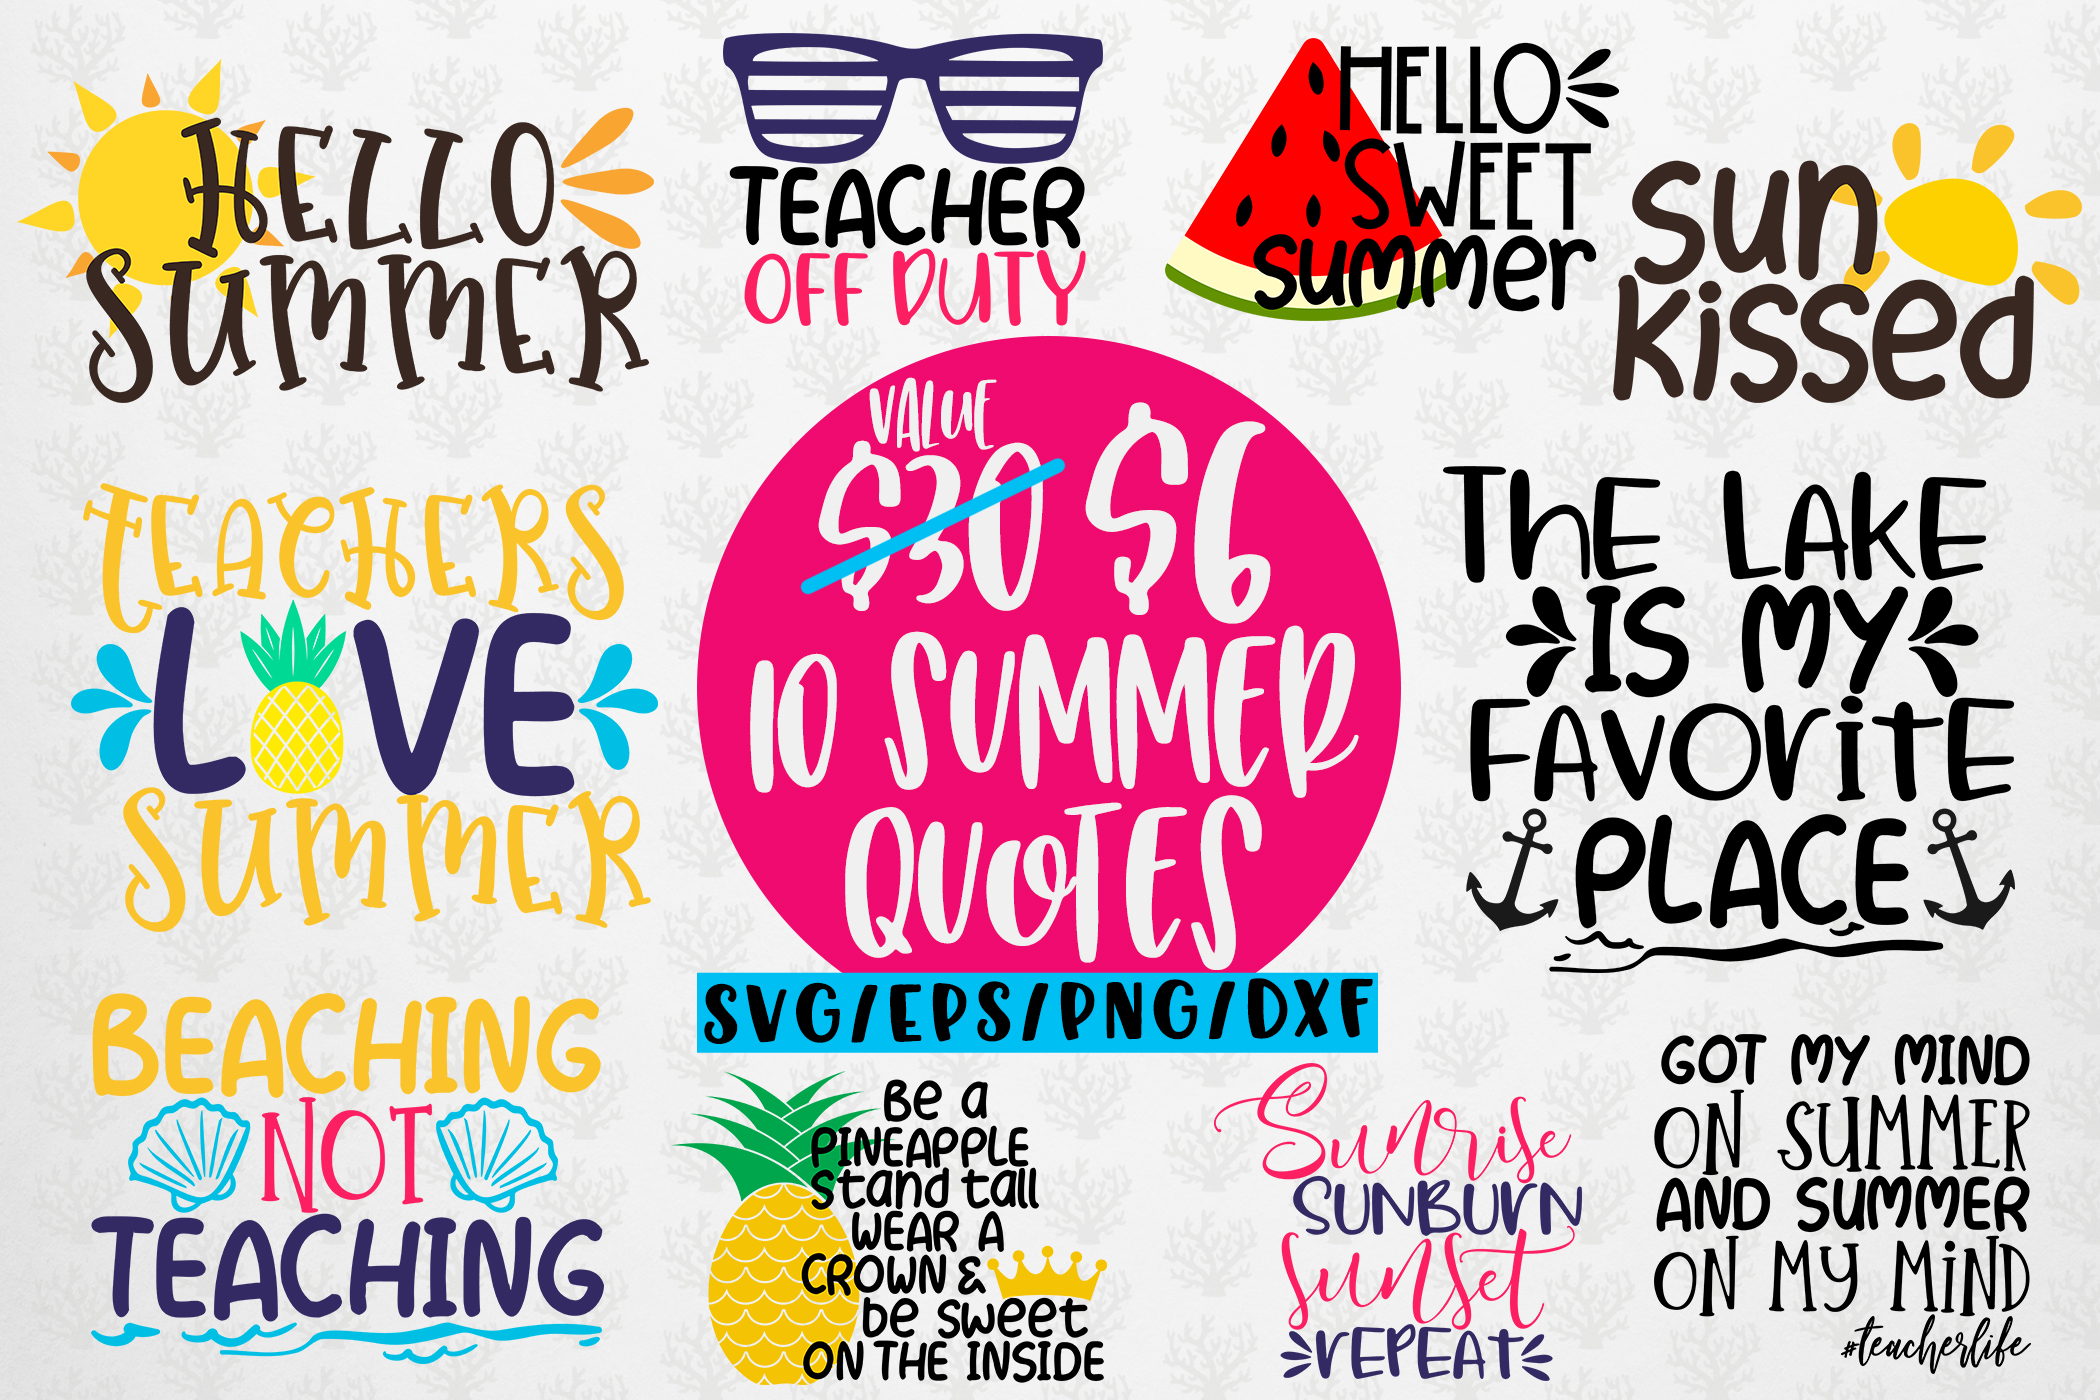 Download Free Summer Beach Bundles Graphic By Coralcutssvg Creative Fabrica for Cricut Explore, Silhouette and other cutting machines.